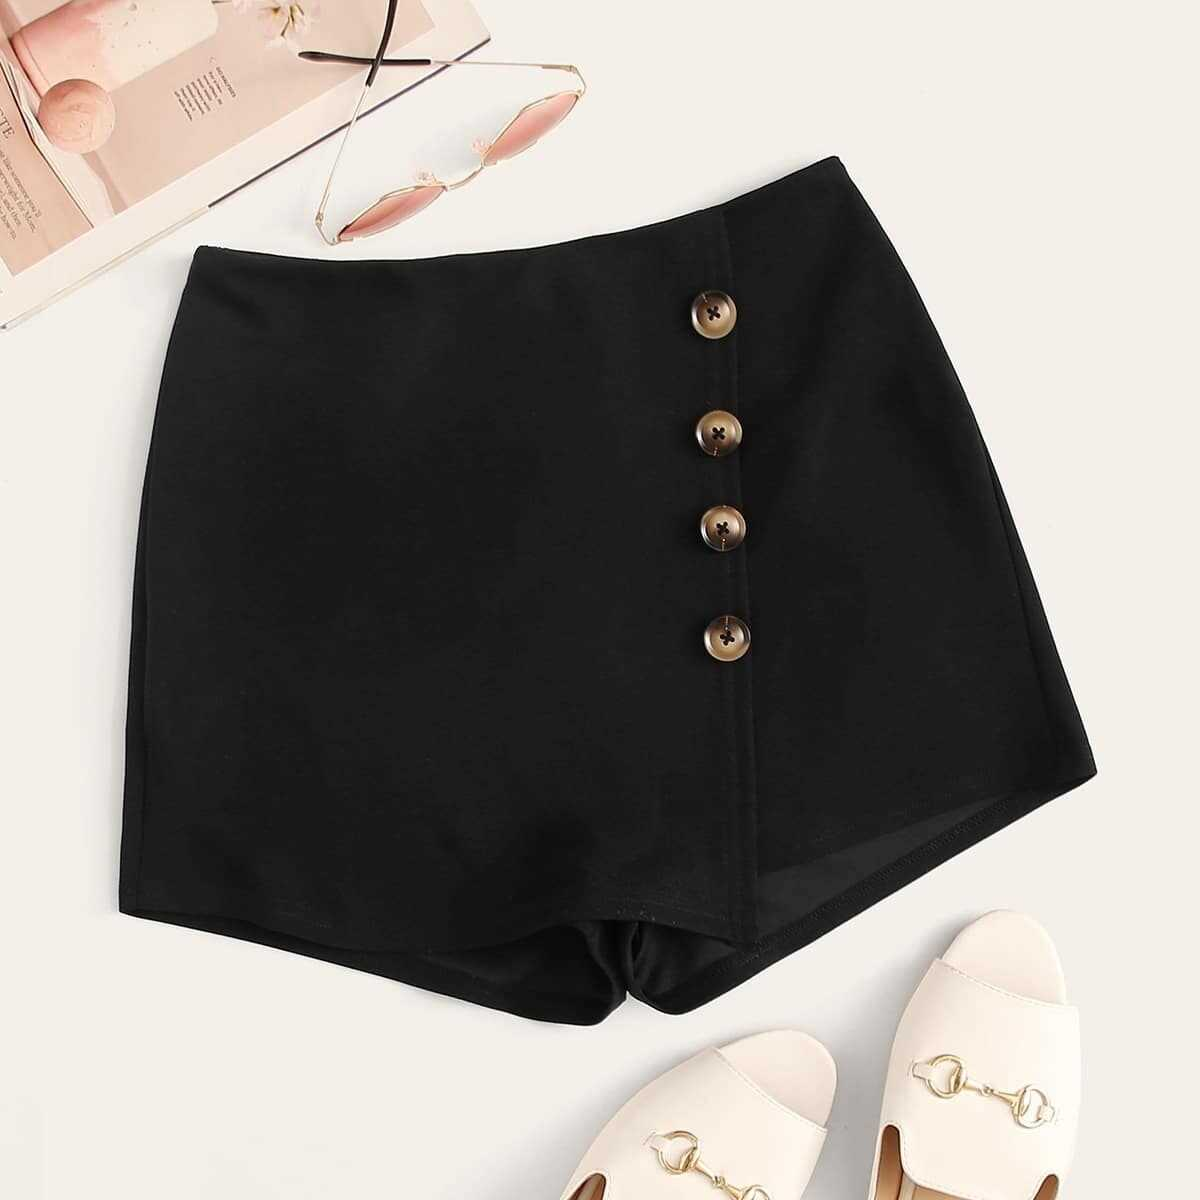 Button Front Zip Back Shorts in Black by ROMWE on GOOFASH